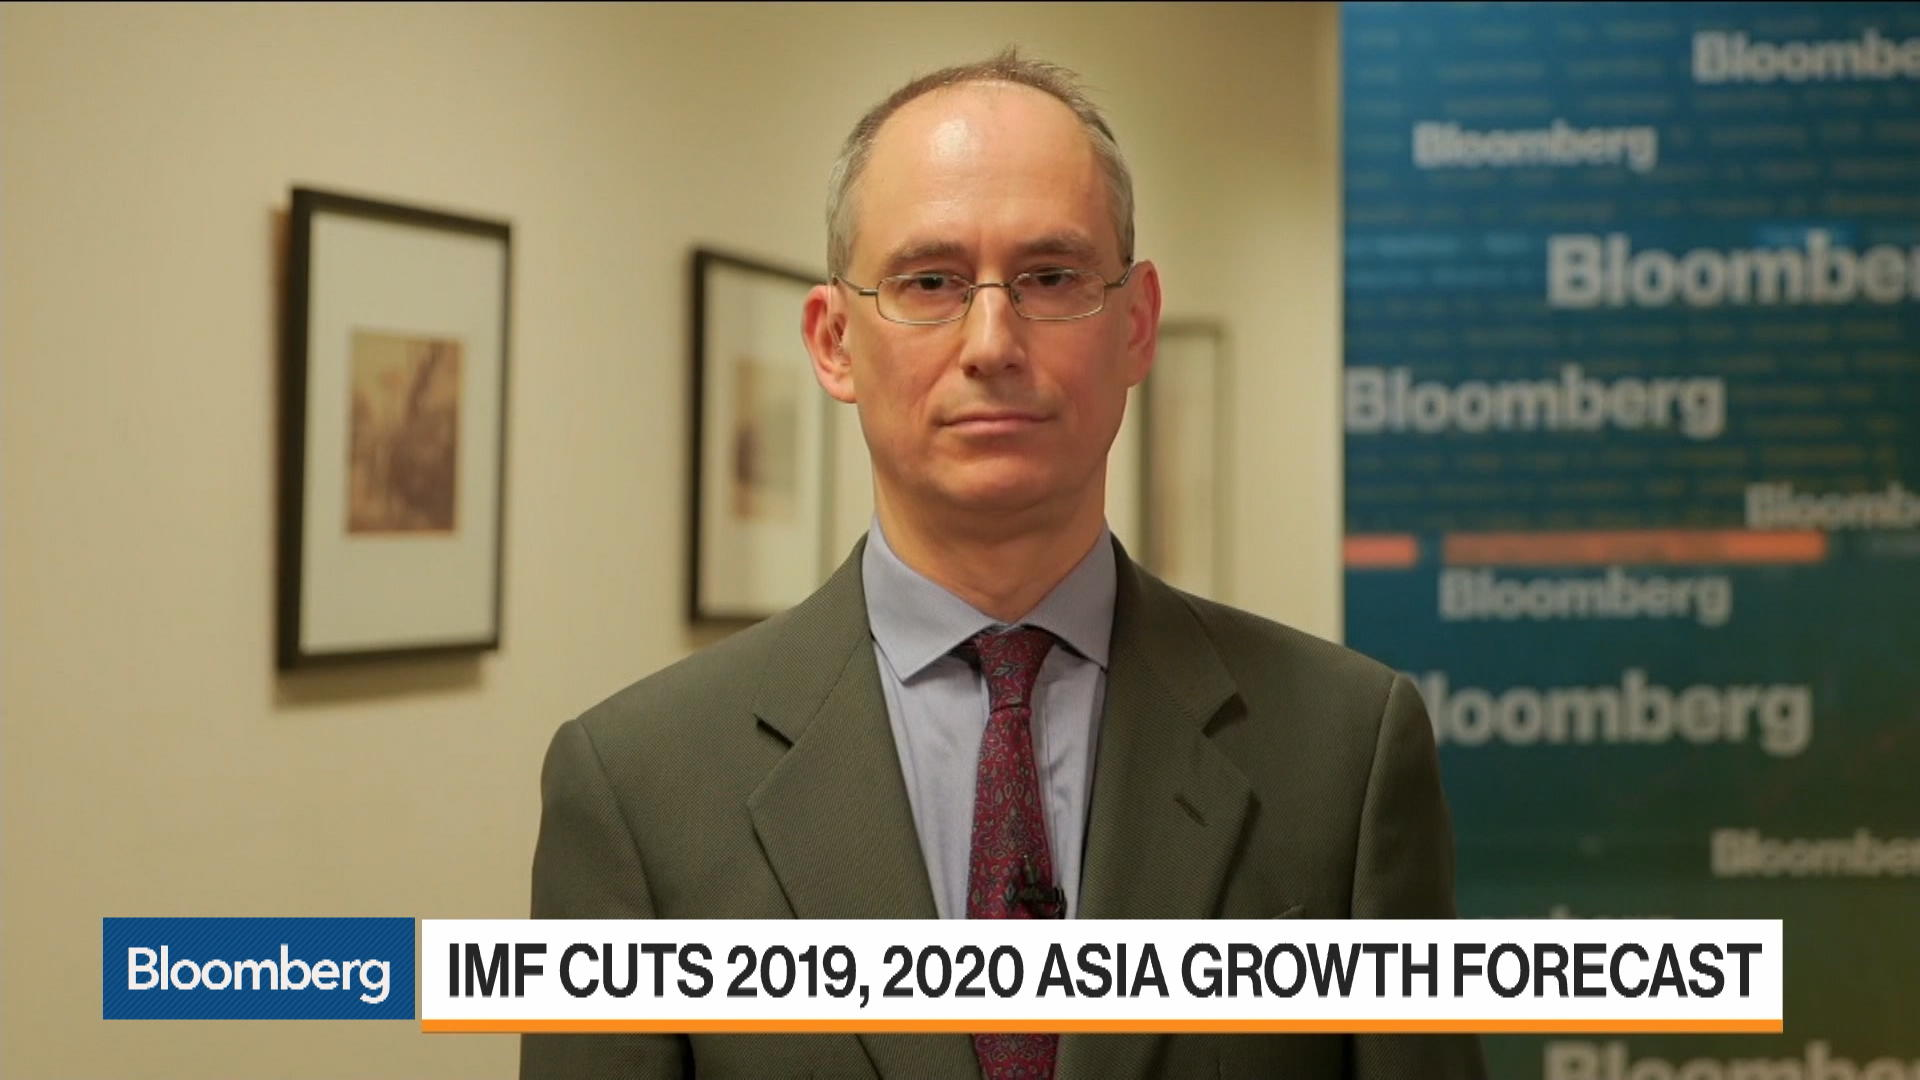 IMF Deputy Director of the Asia Pacific Department Jonathan Ostry on Asia Growth